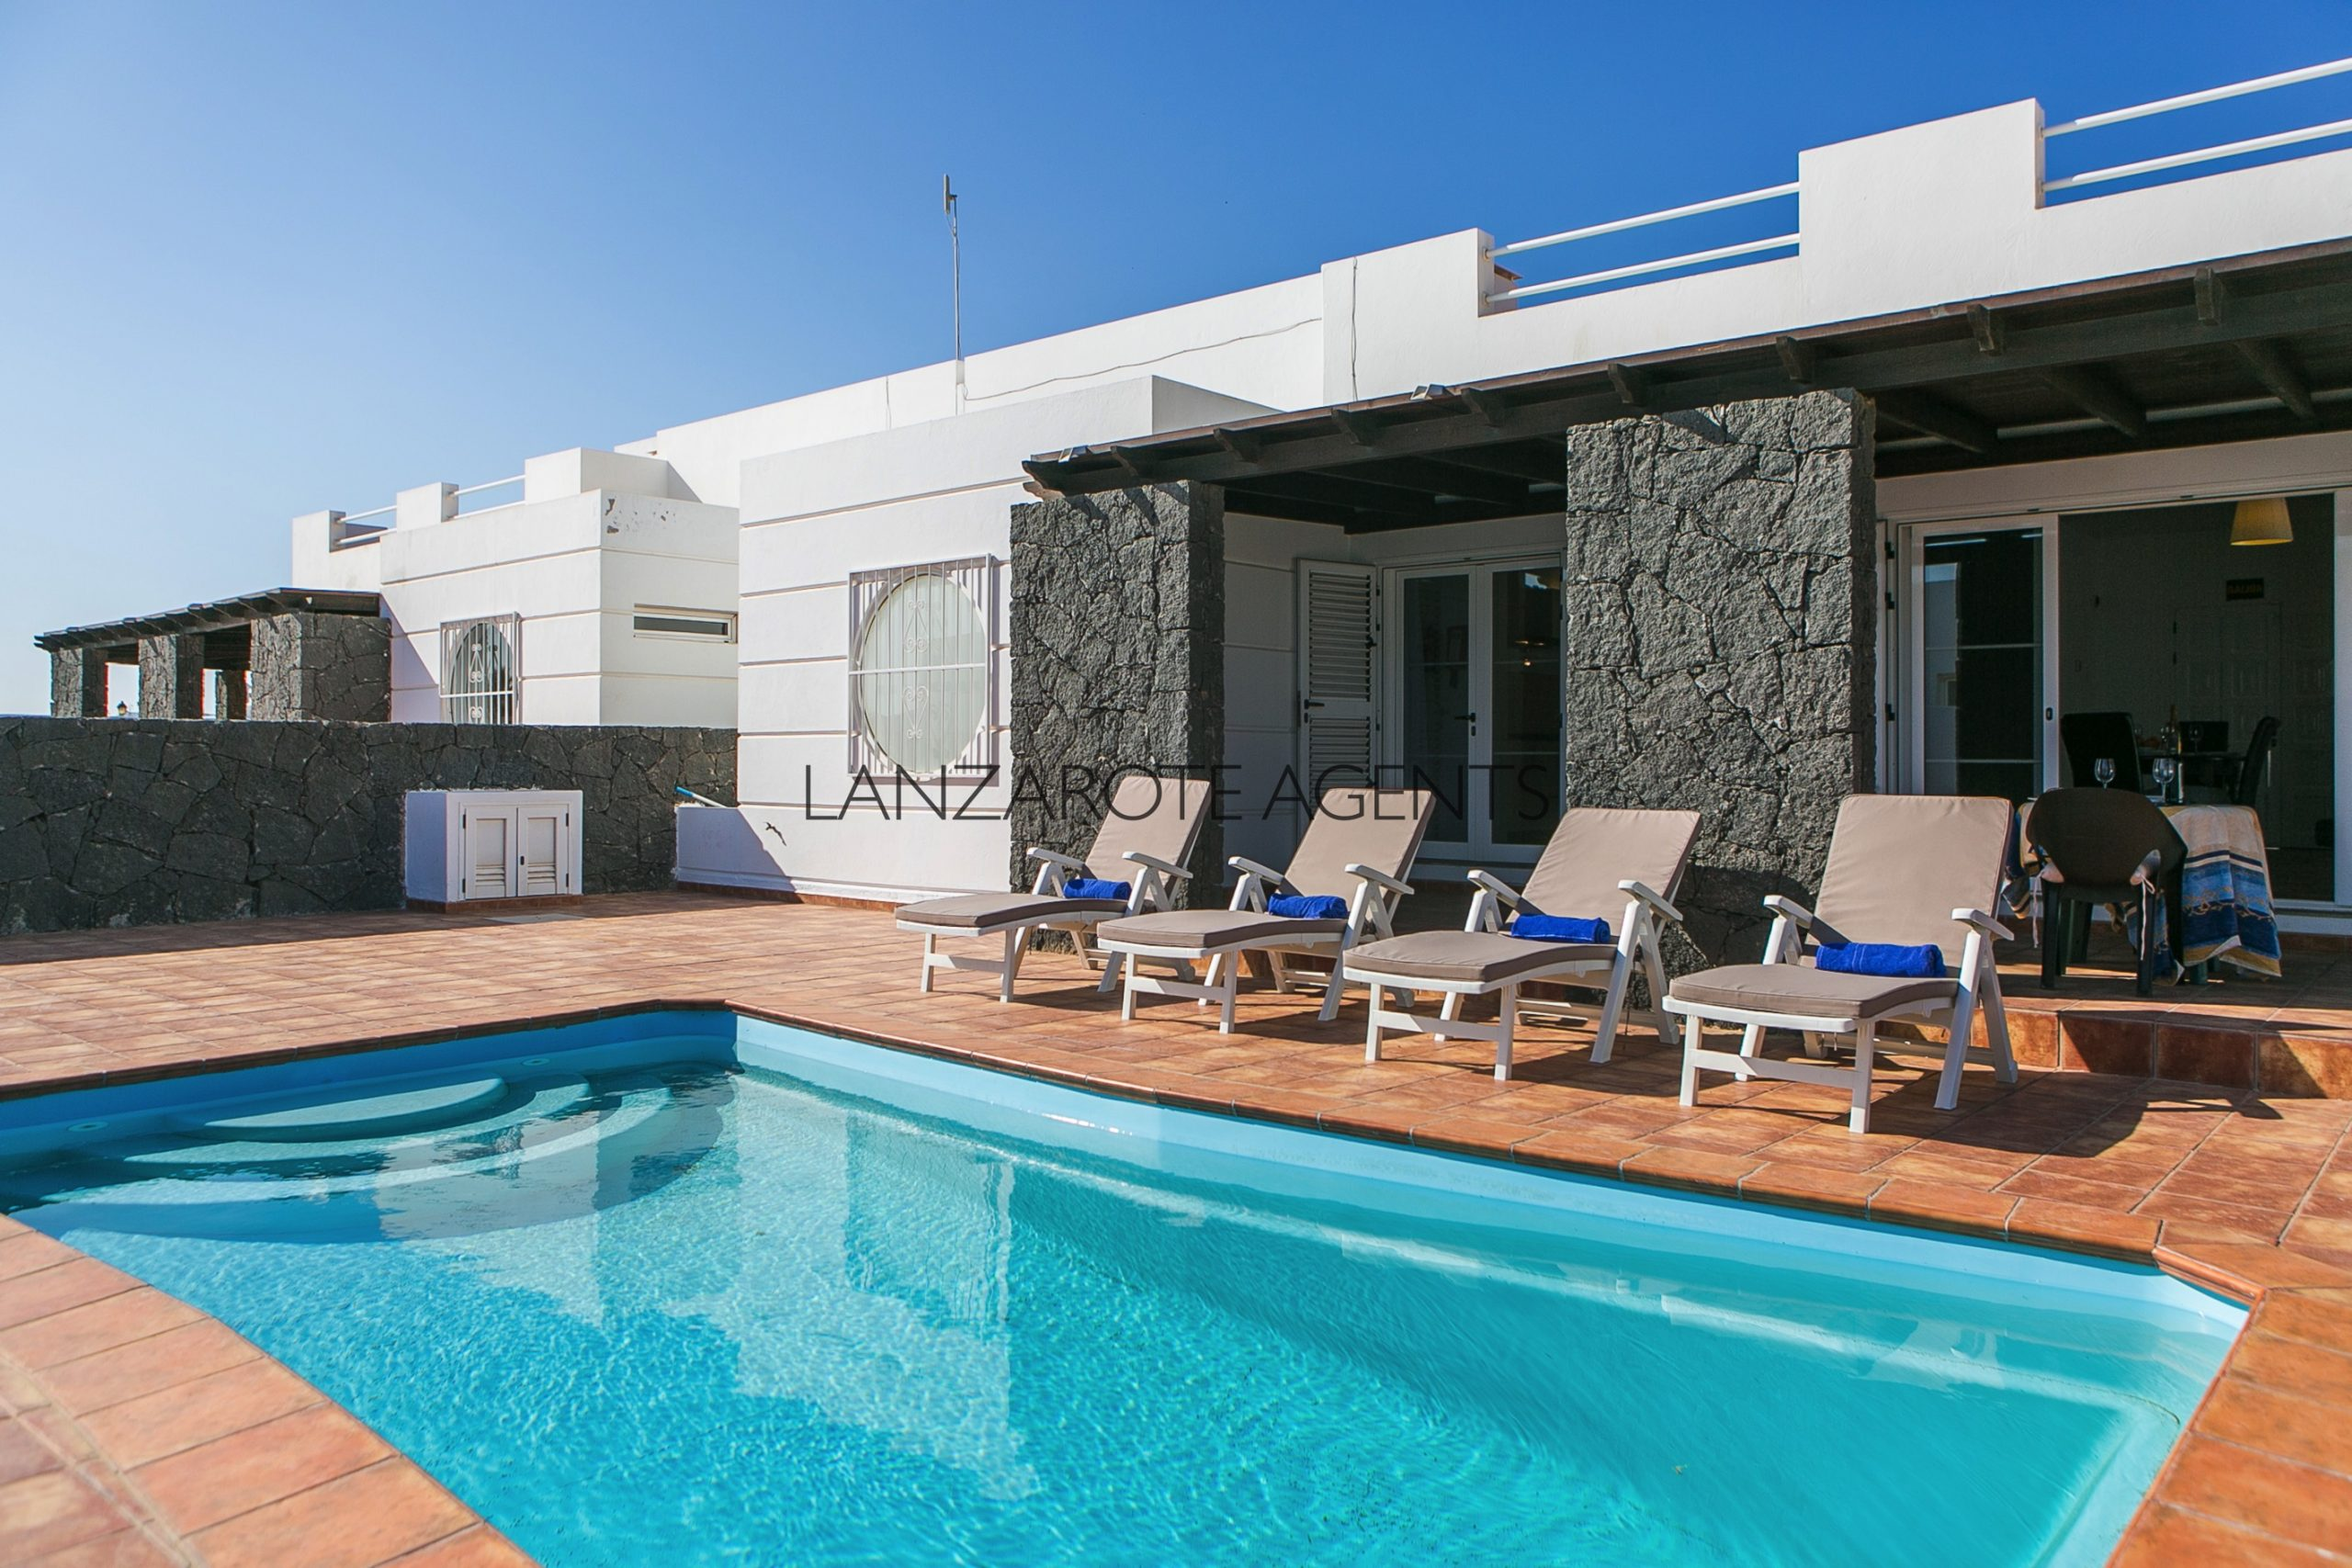 Fabulous 4 Bedroom Villa With Vv Tourist License And Ready To Continue The Rental Business Lanzarote Agents Sl